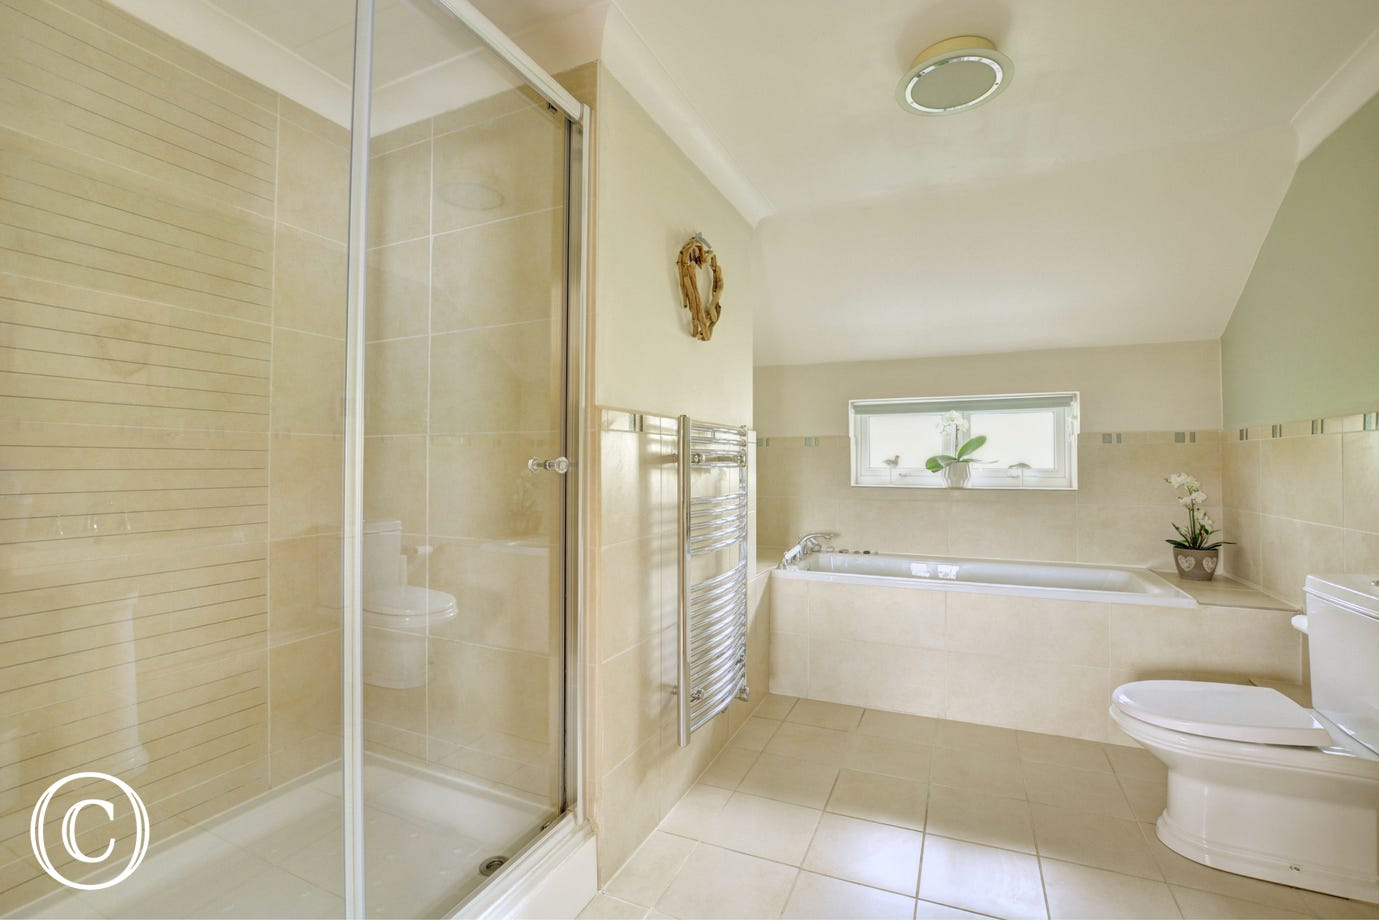 Family bathroom with shower cubicle, bath with hand held shower attachment, washbasin and w.c